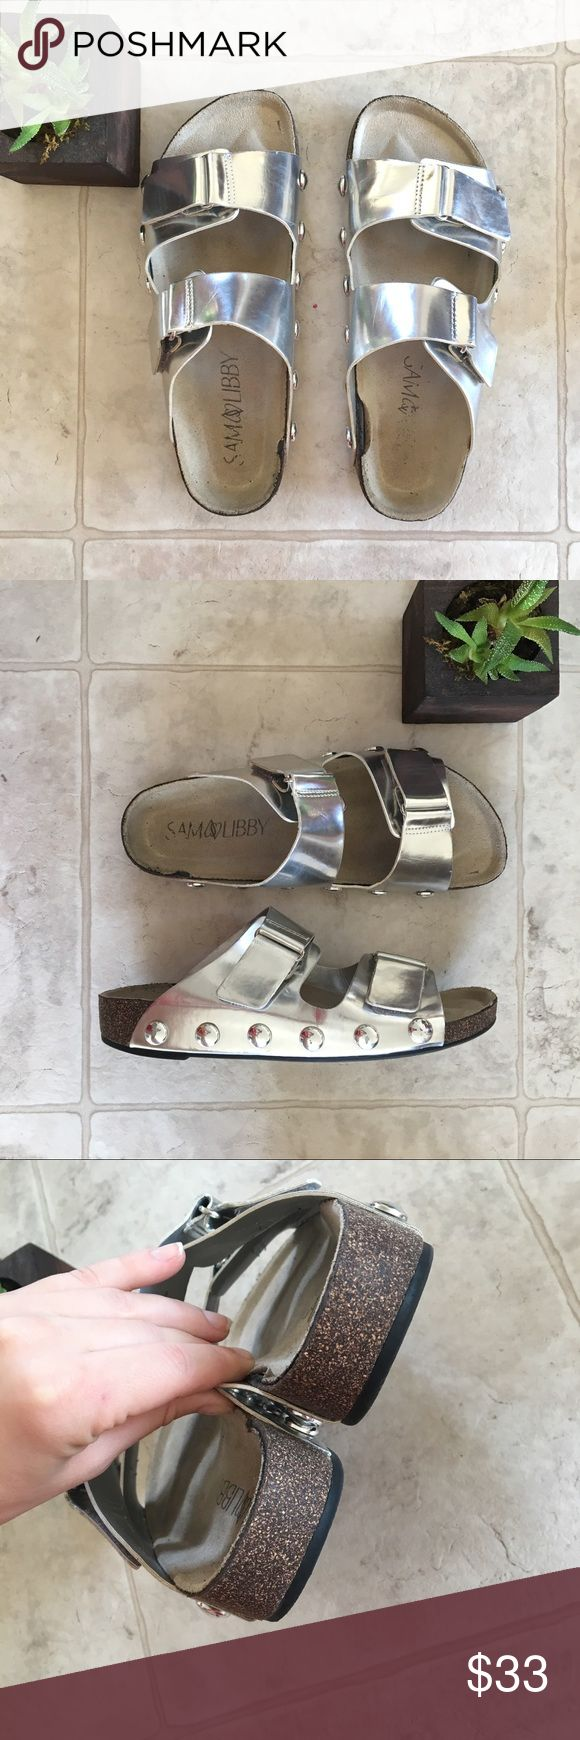 Silver Metallic Buckle Sandals, Slip-on Cork Shoes Beautiful silver sandals! Shiny metallic appearance. Birkenstock type shoe but brand is Sam & Libby. Cork and rubber soles that are super comfy yet sturdy. Velcro straps for adjustable tightness. Women's Size 7. Some very light wear as shown but overall really great shoes! Birkenstock Shoes Sandals